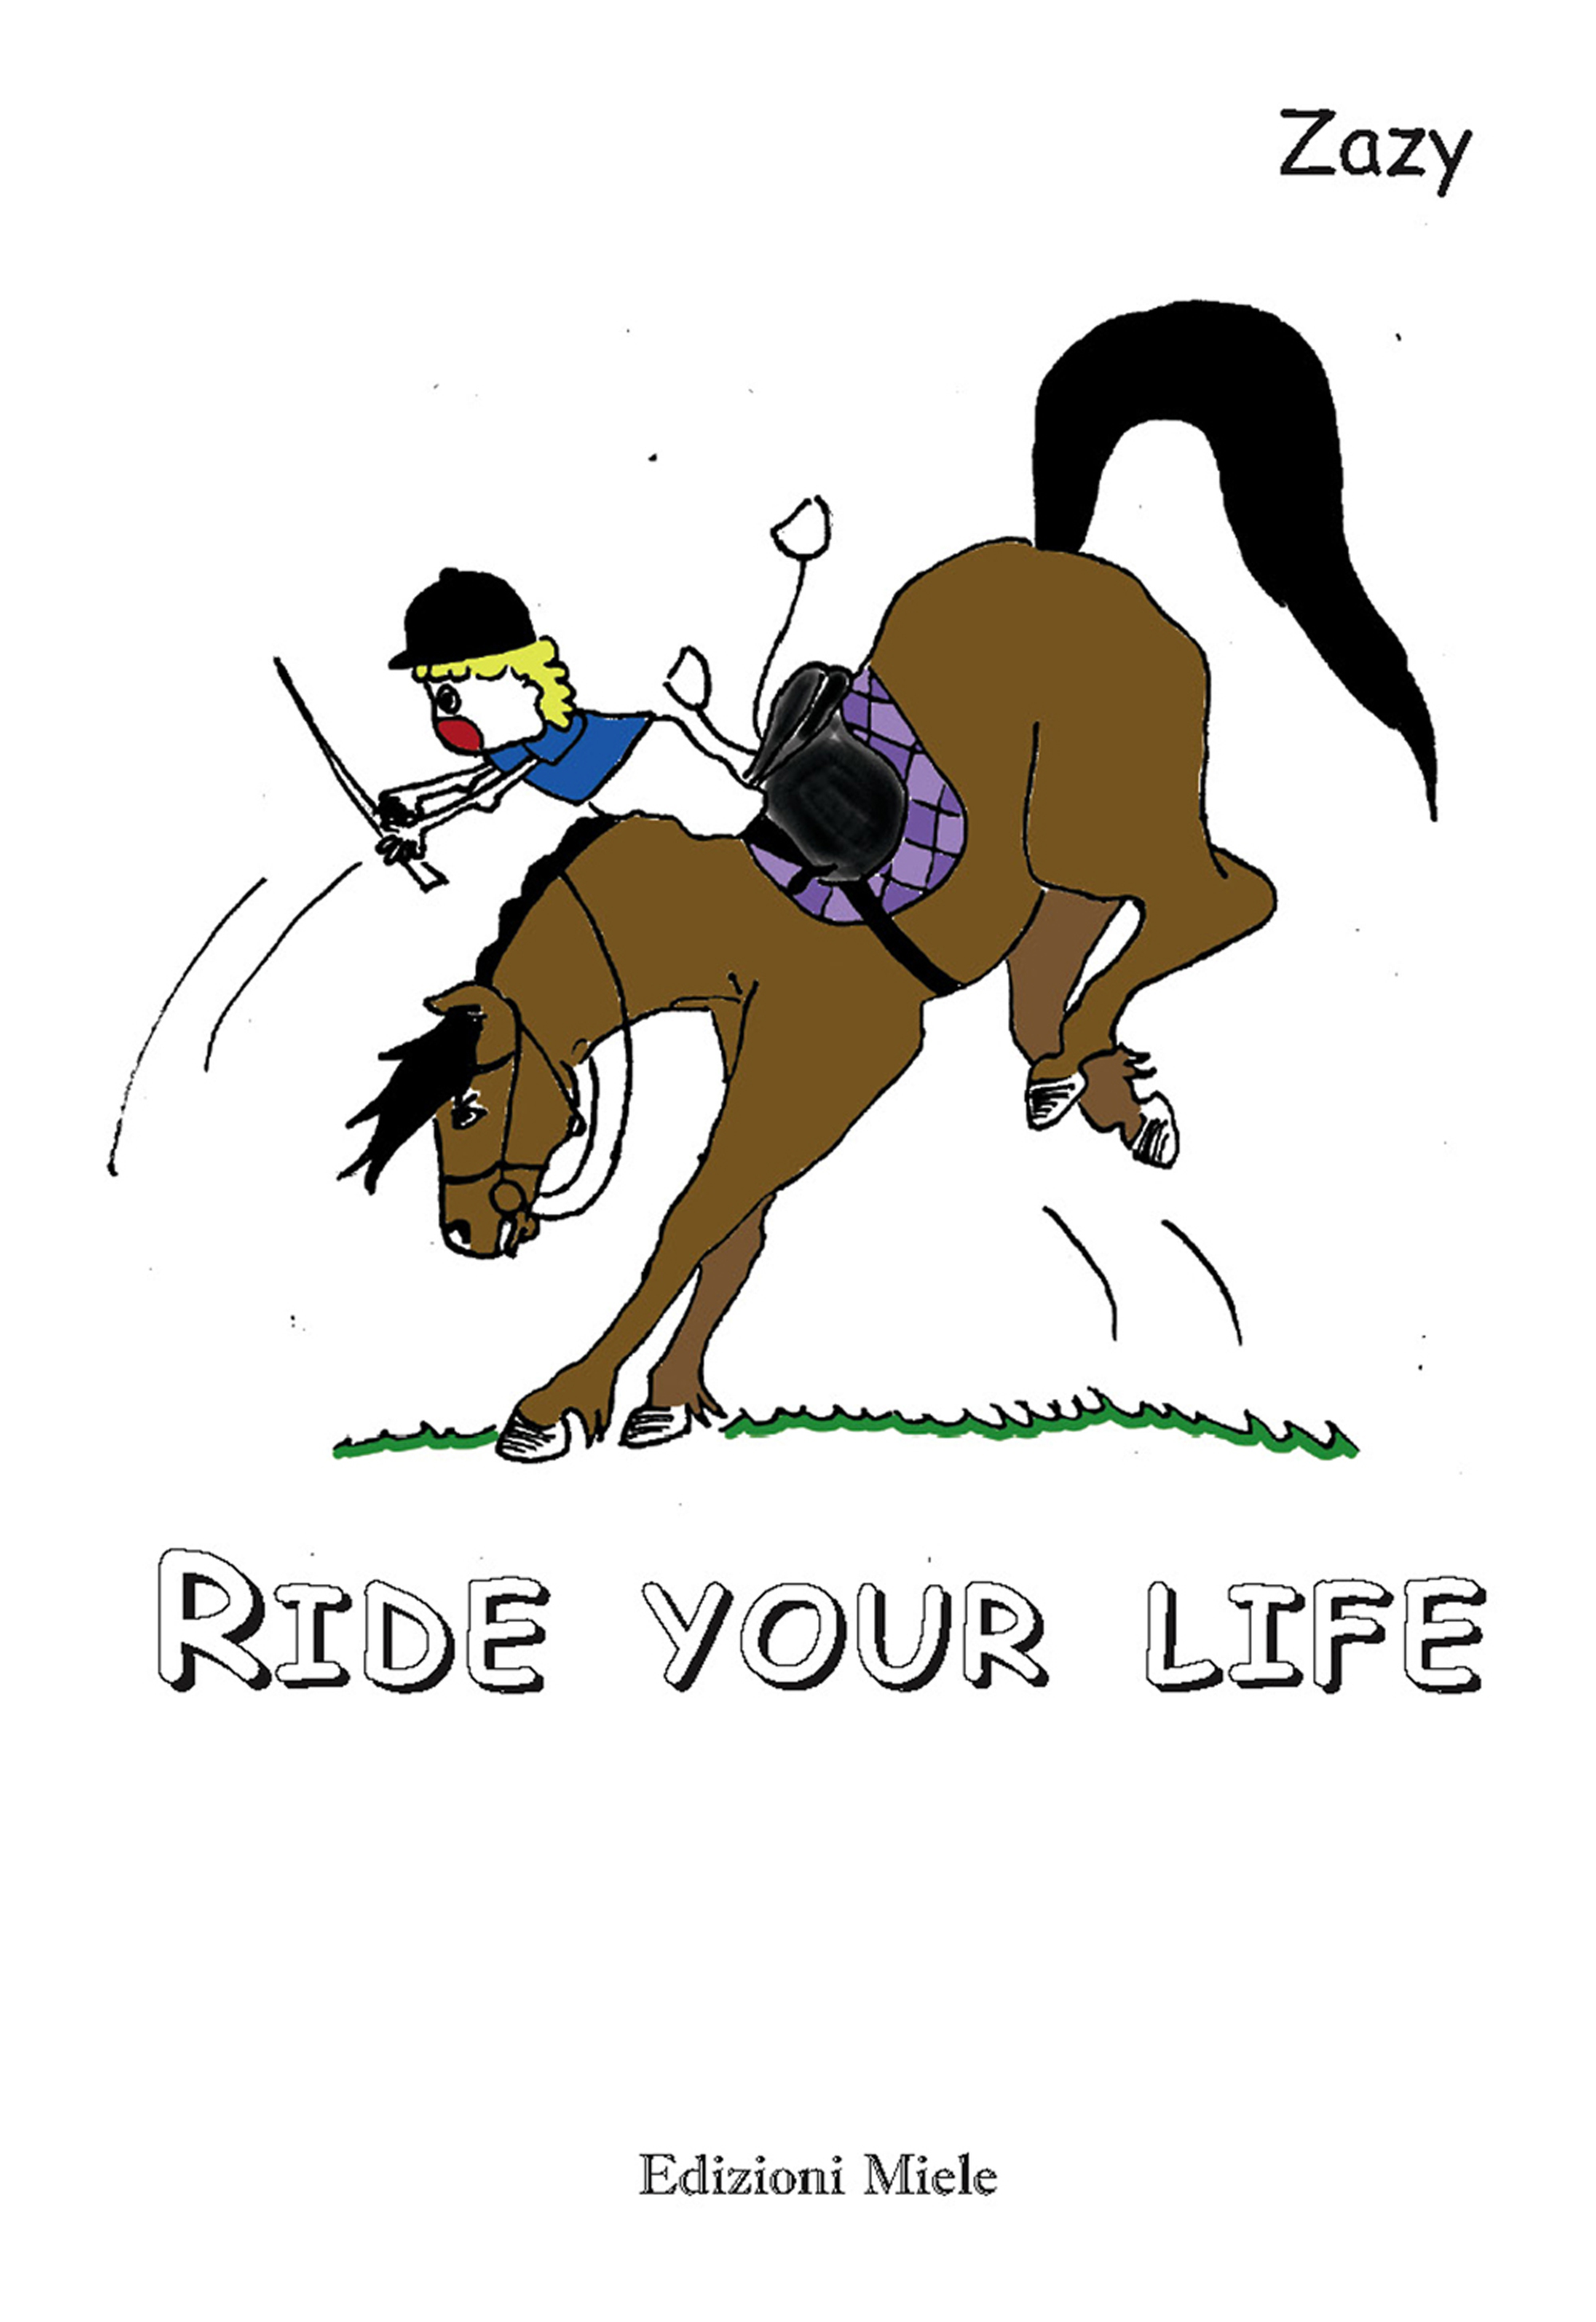 Ride you life